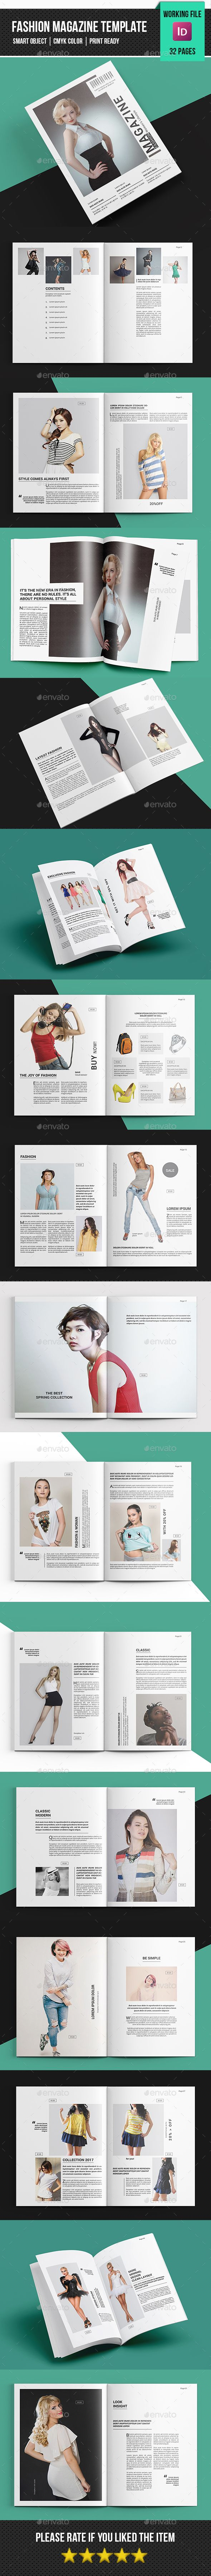 Fashion Lookbook Magazine V05 | Diseños de revista, Revistas y Catálogo